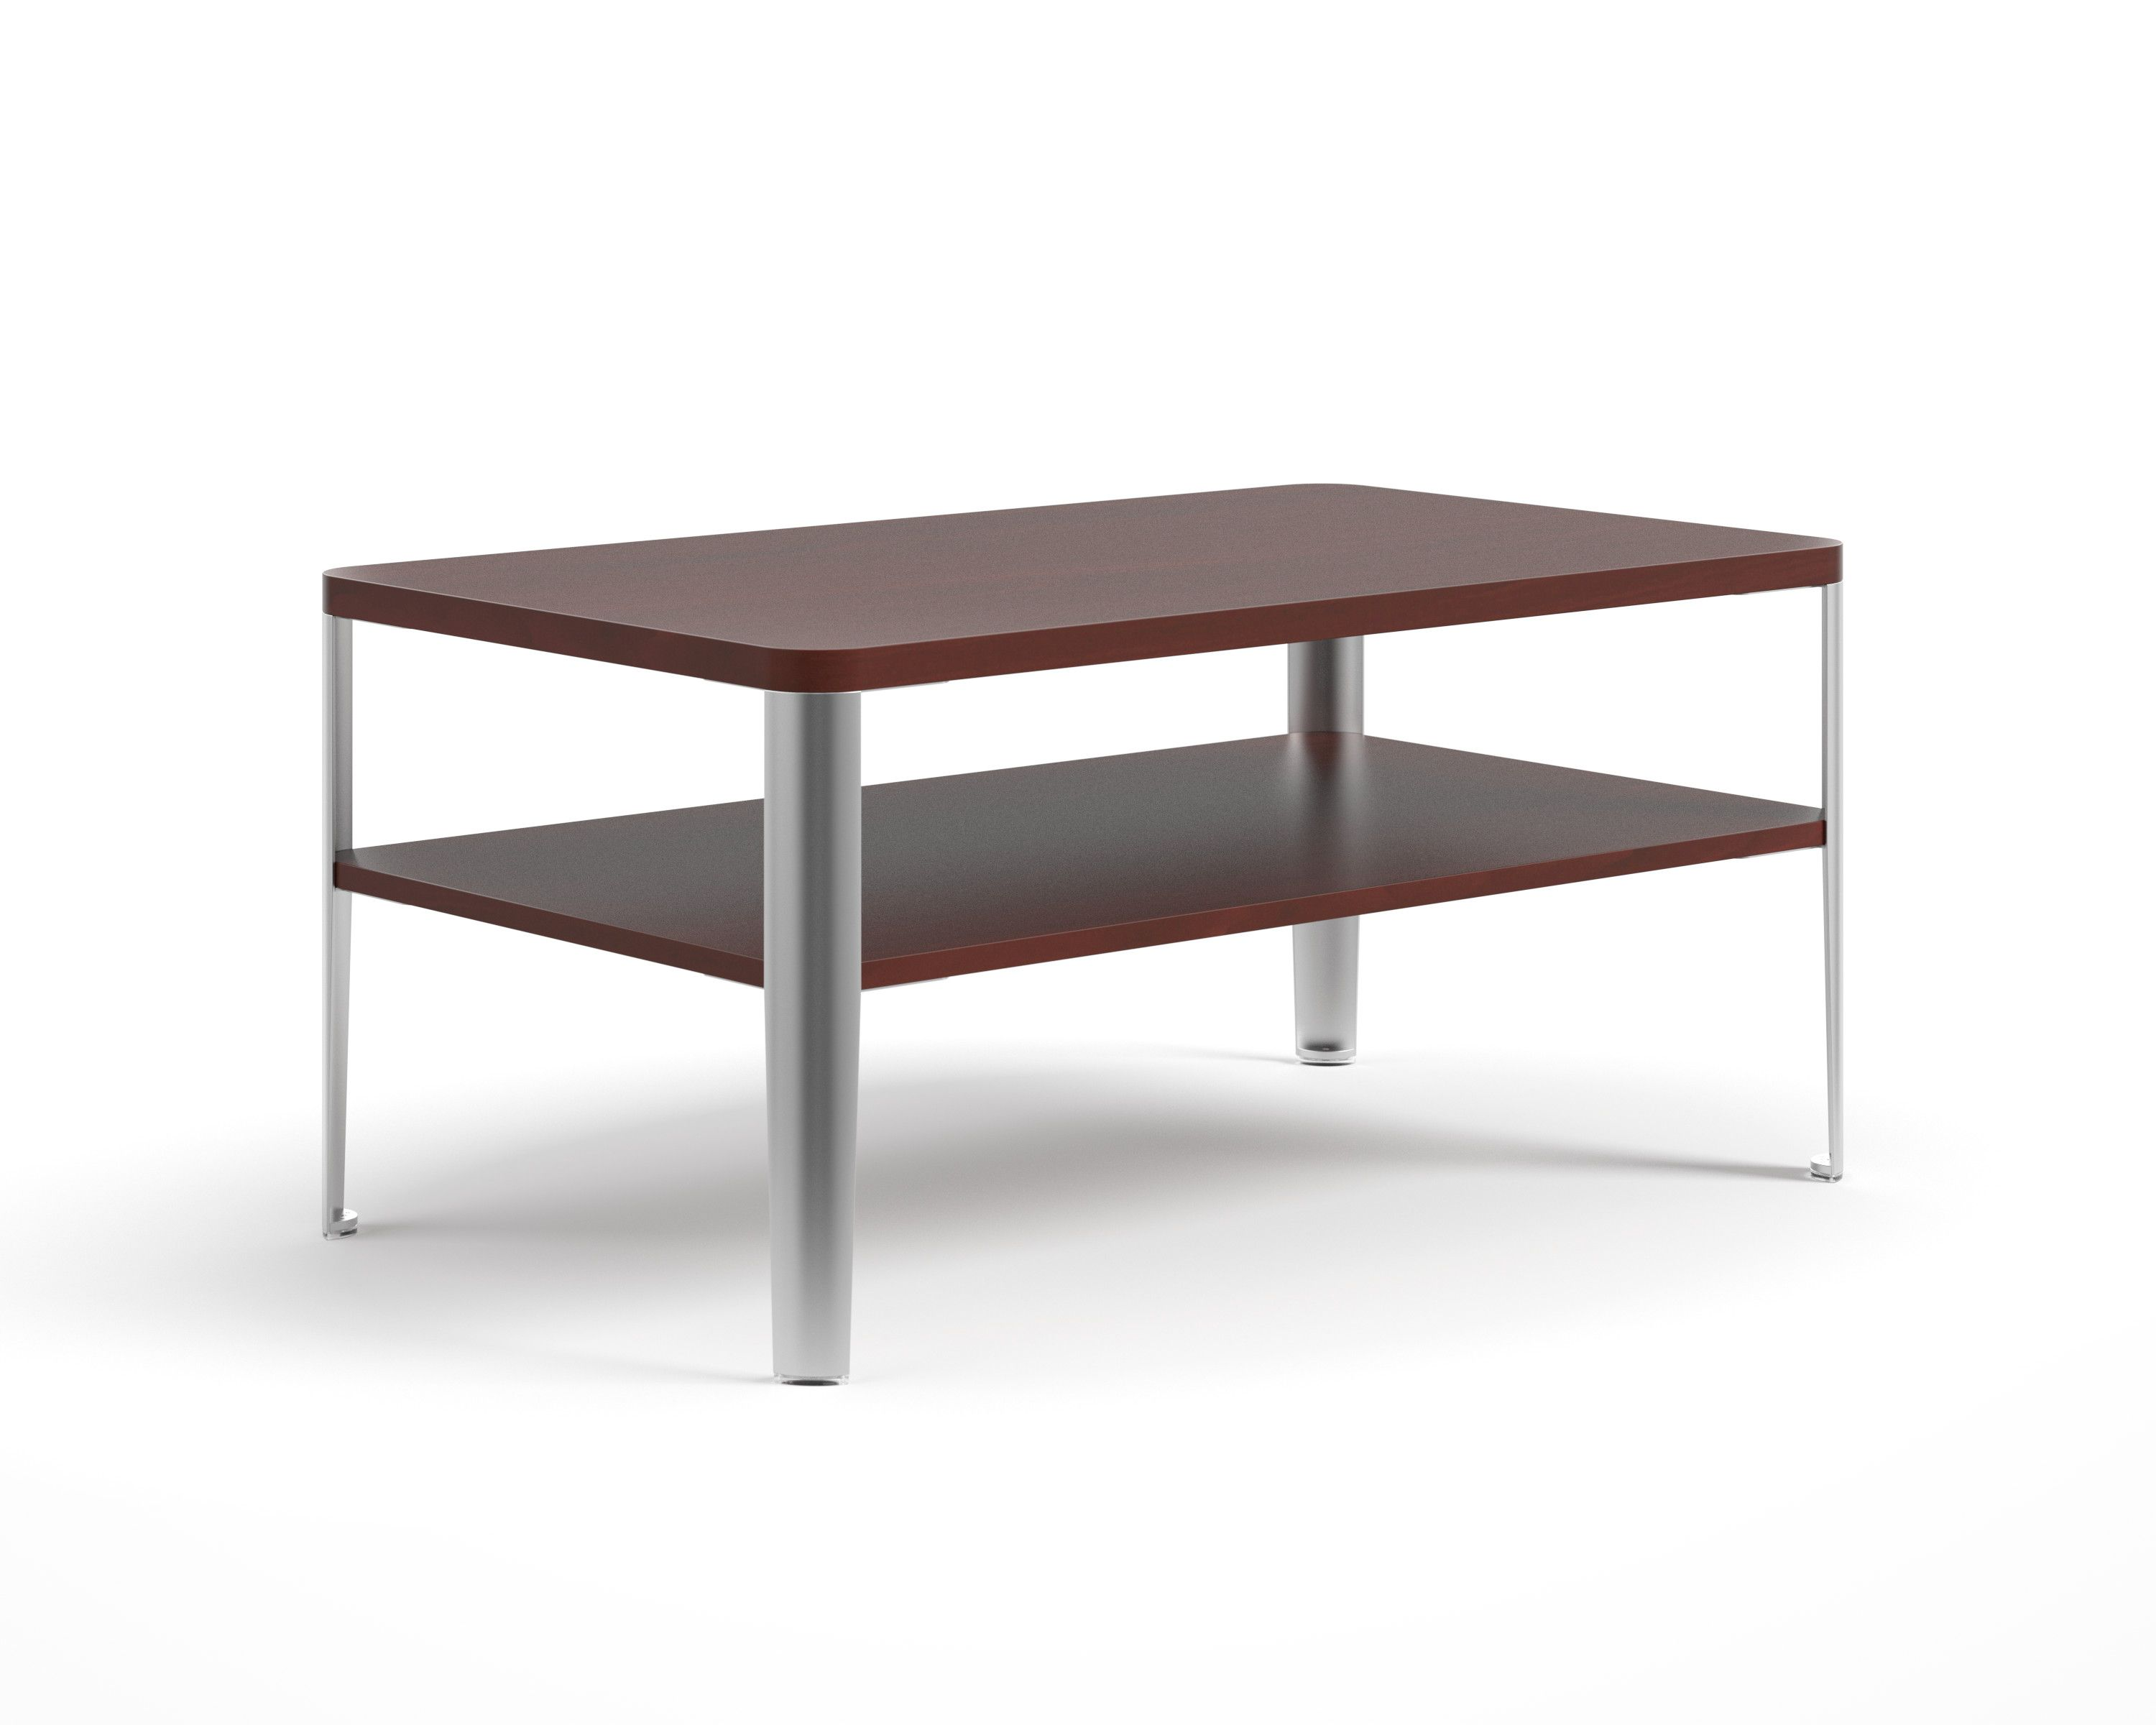 Tables occasional blogger table connect table - Endorse Occasional Table Endorse From Hon Is A Multi Functional Collection Of Office Task